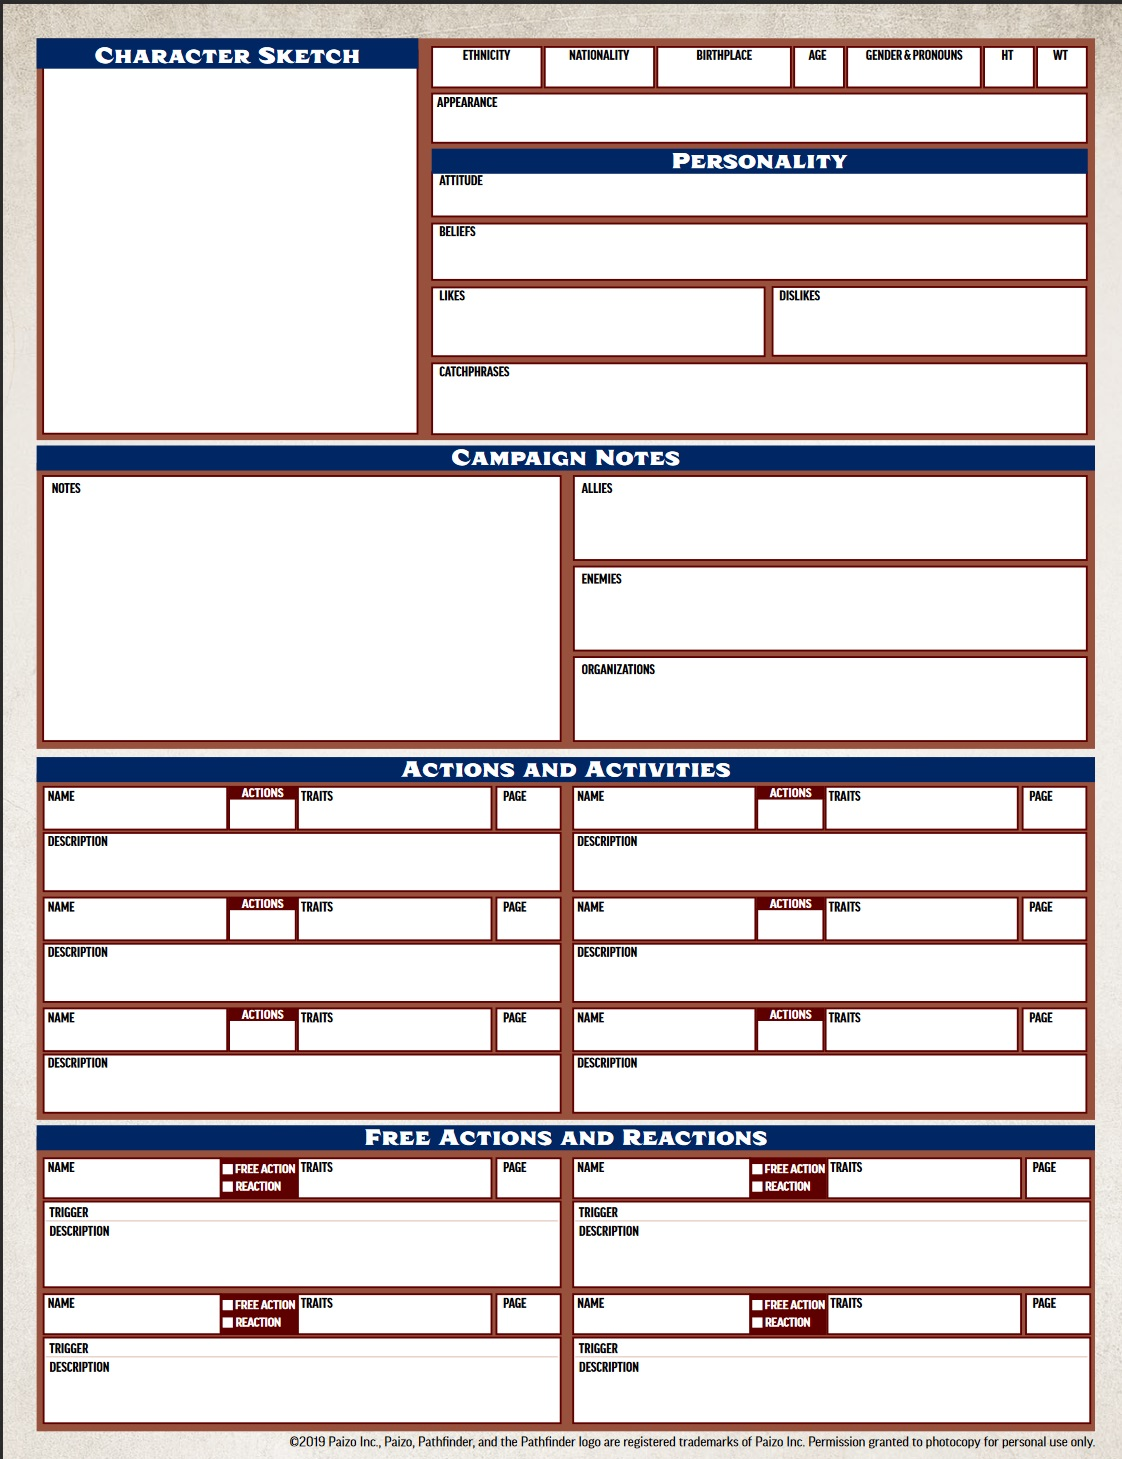 graphic regarding Pathfinder Character Sheets Printable identified as Pathfinders Instant Model Individuality Sheet Includes Anyone